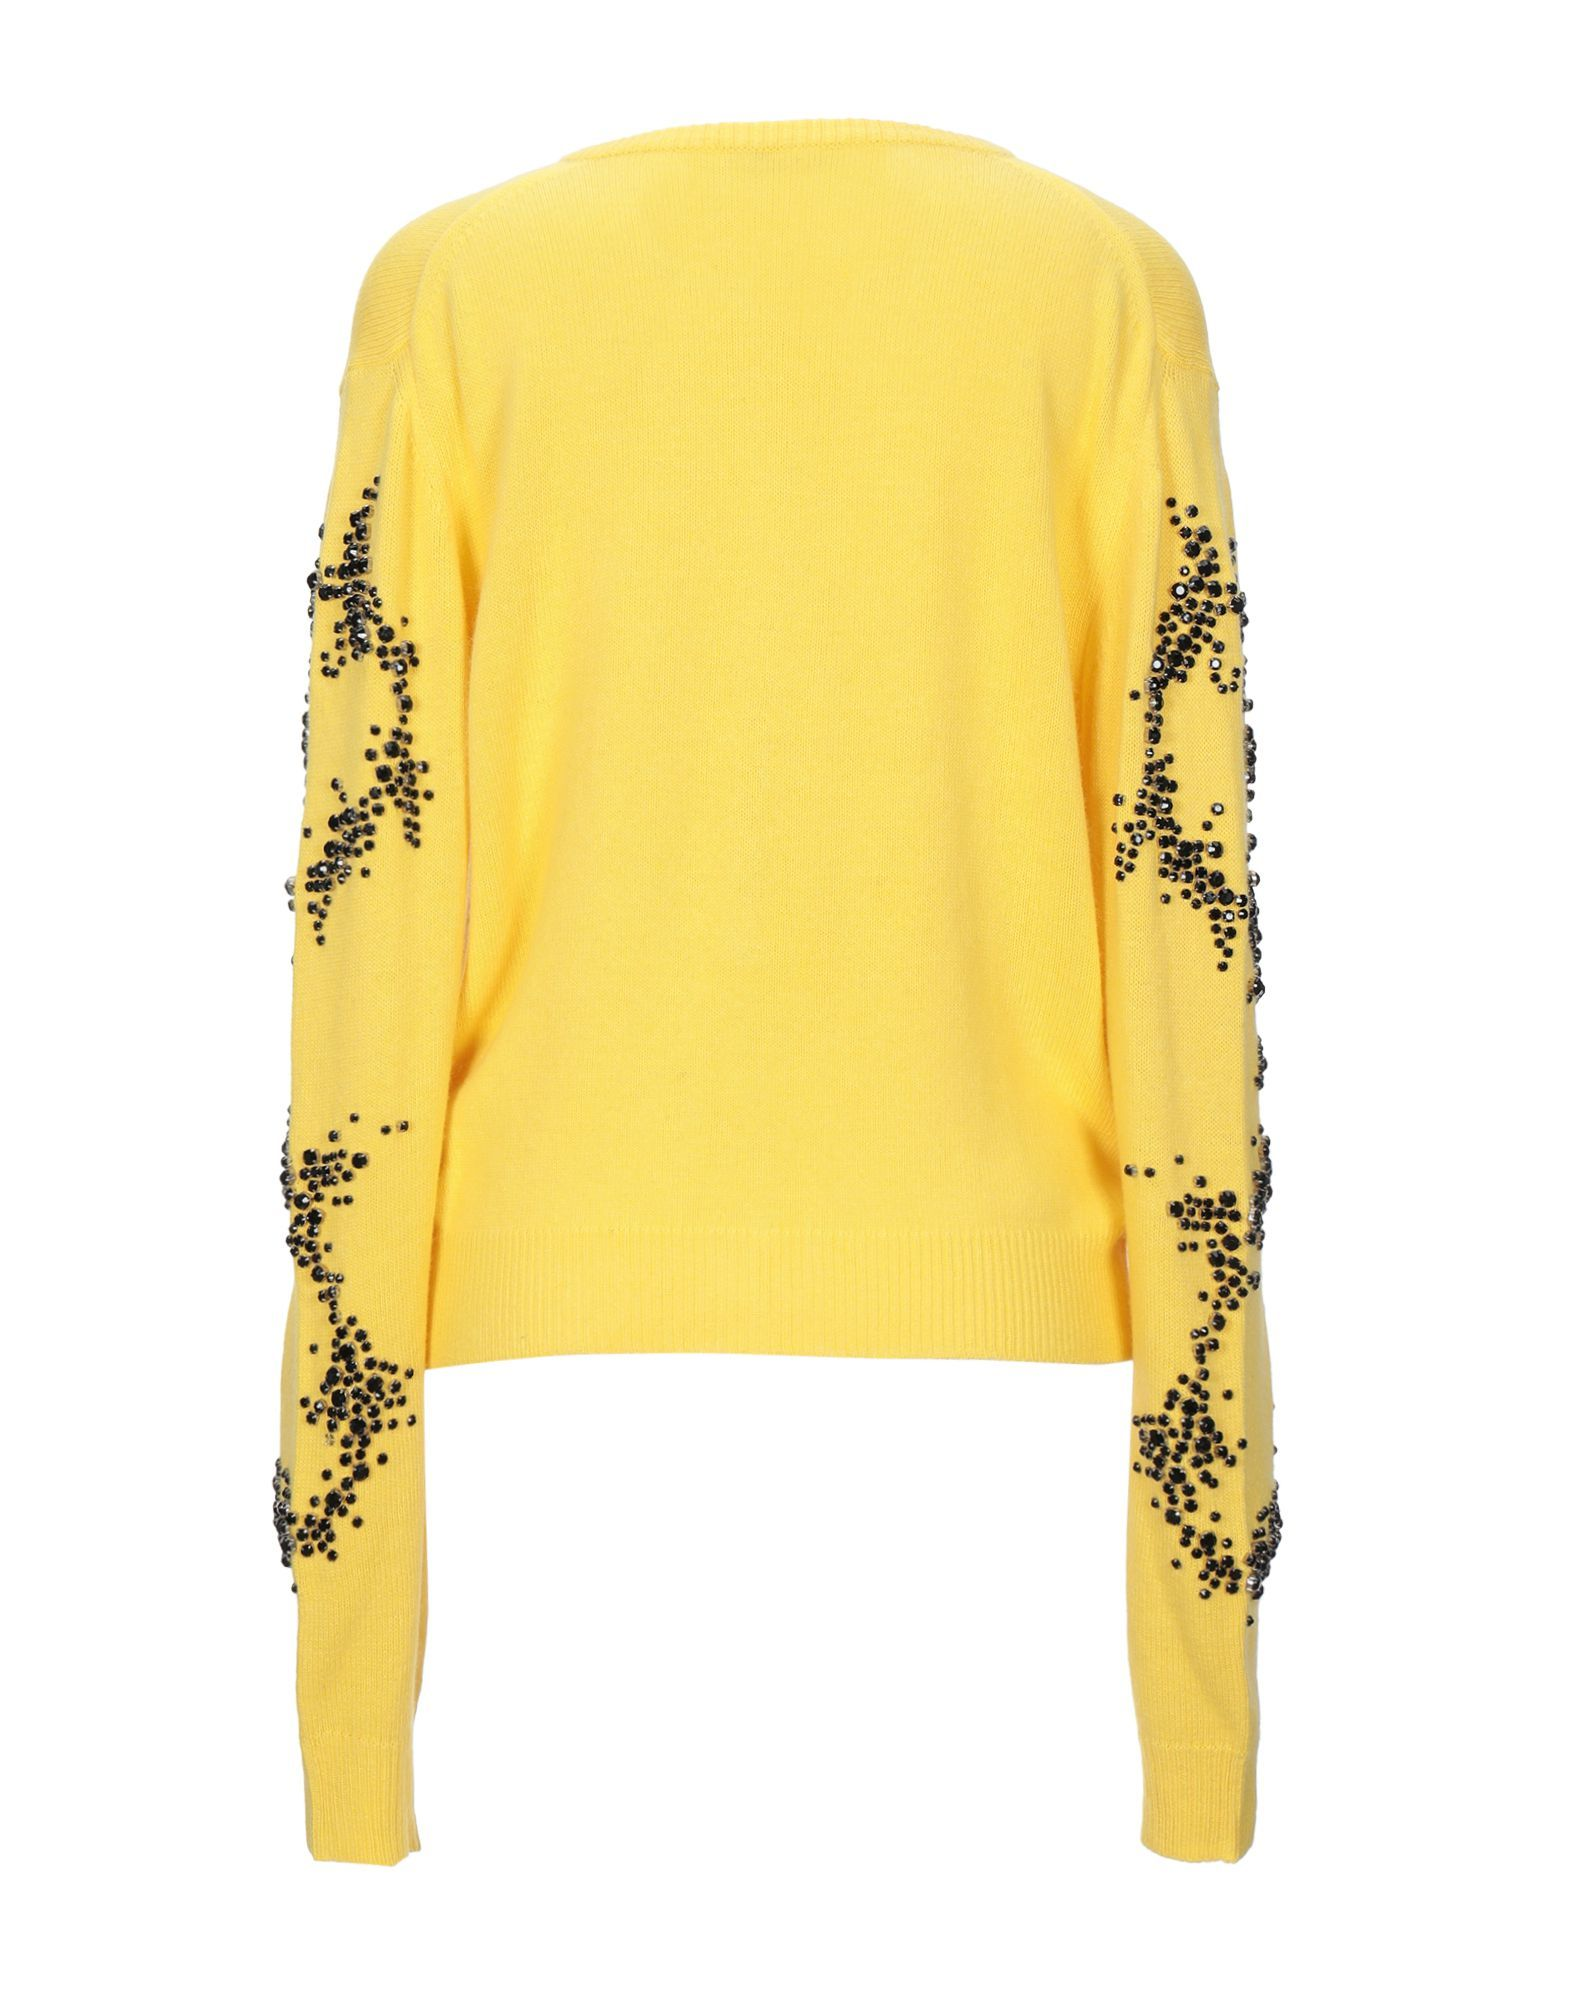 The Attico Yellow Wool Embellished Cardigan